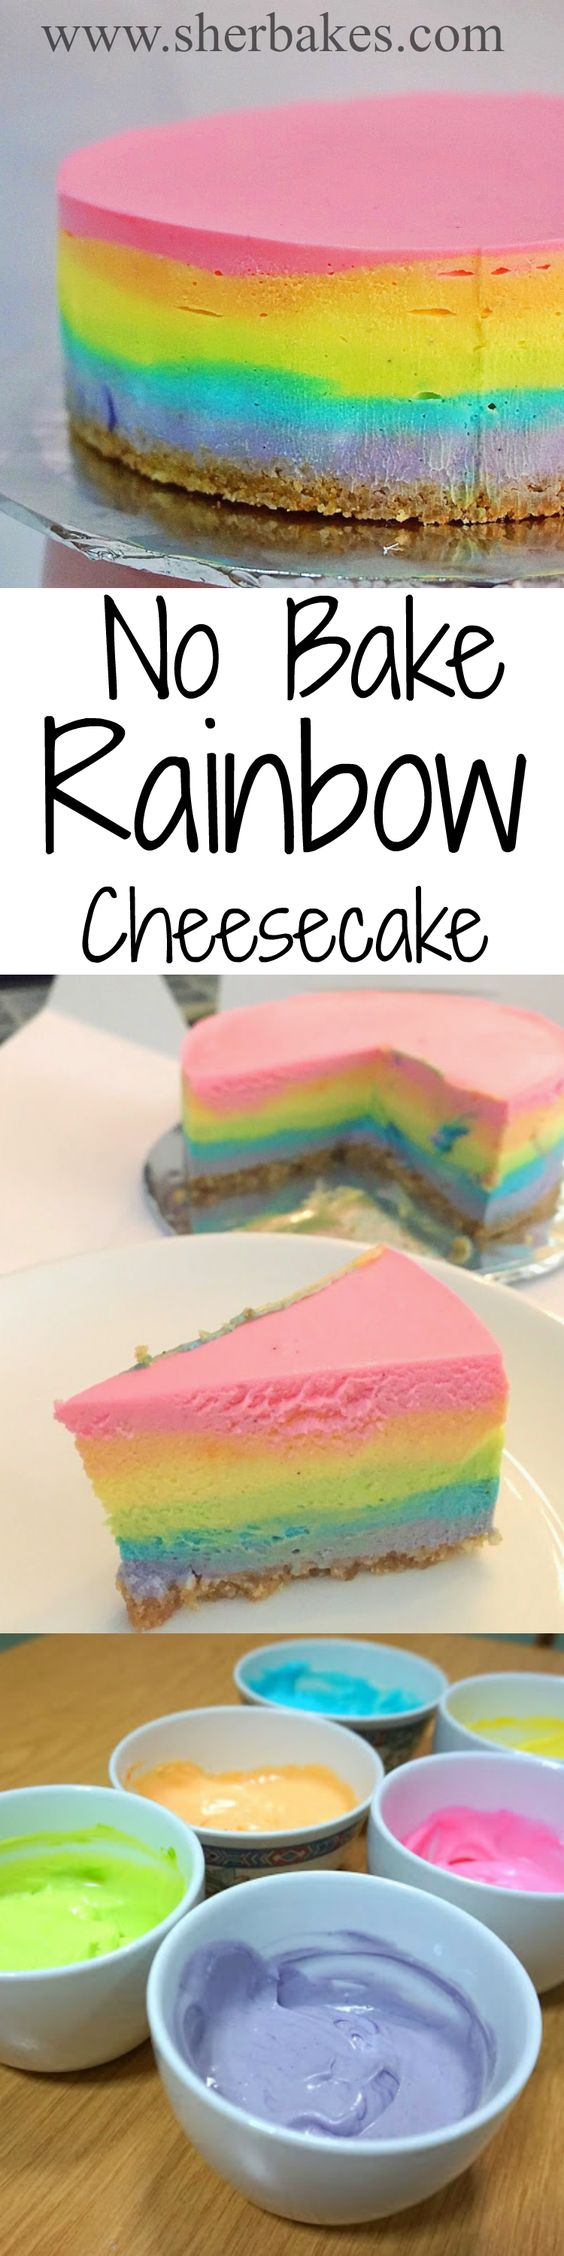 how to make cheesecake step by step with pictures